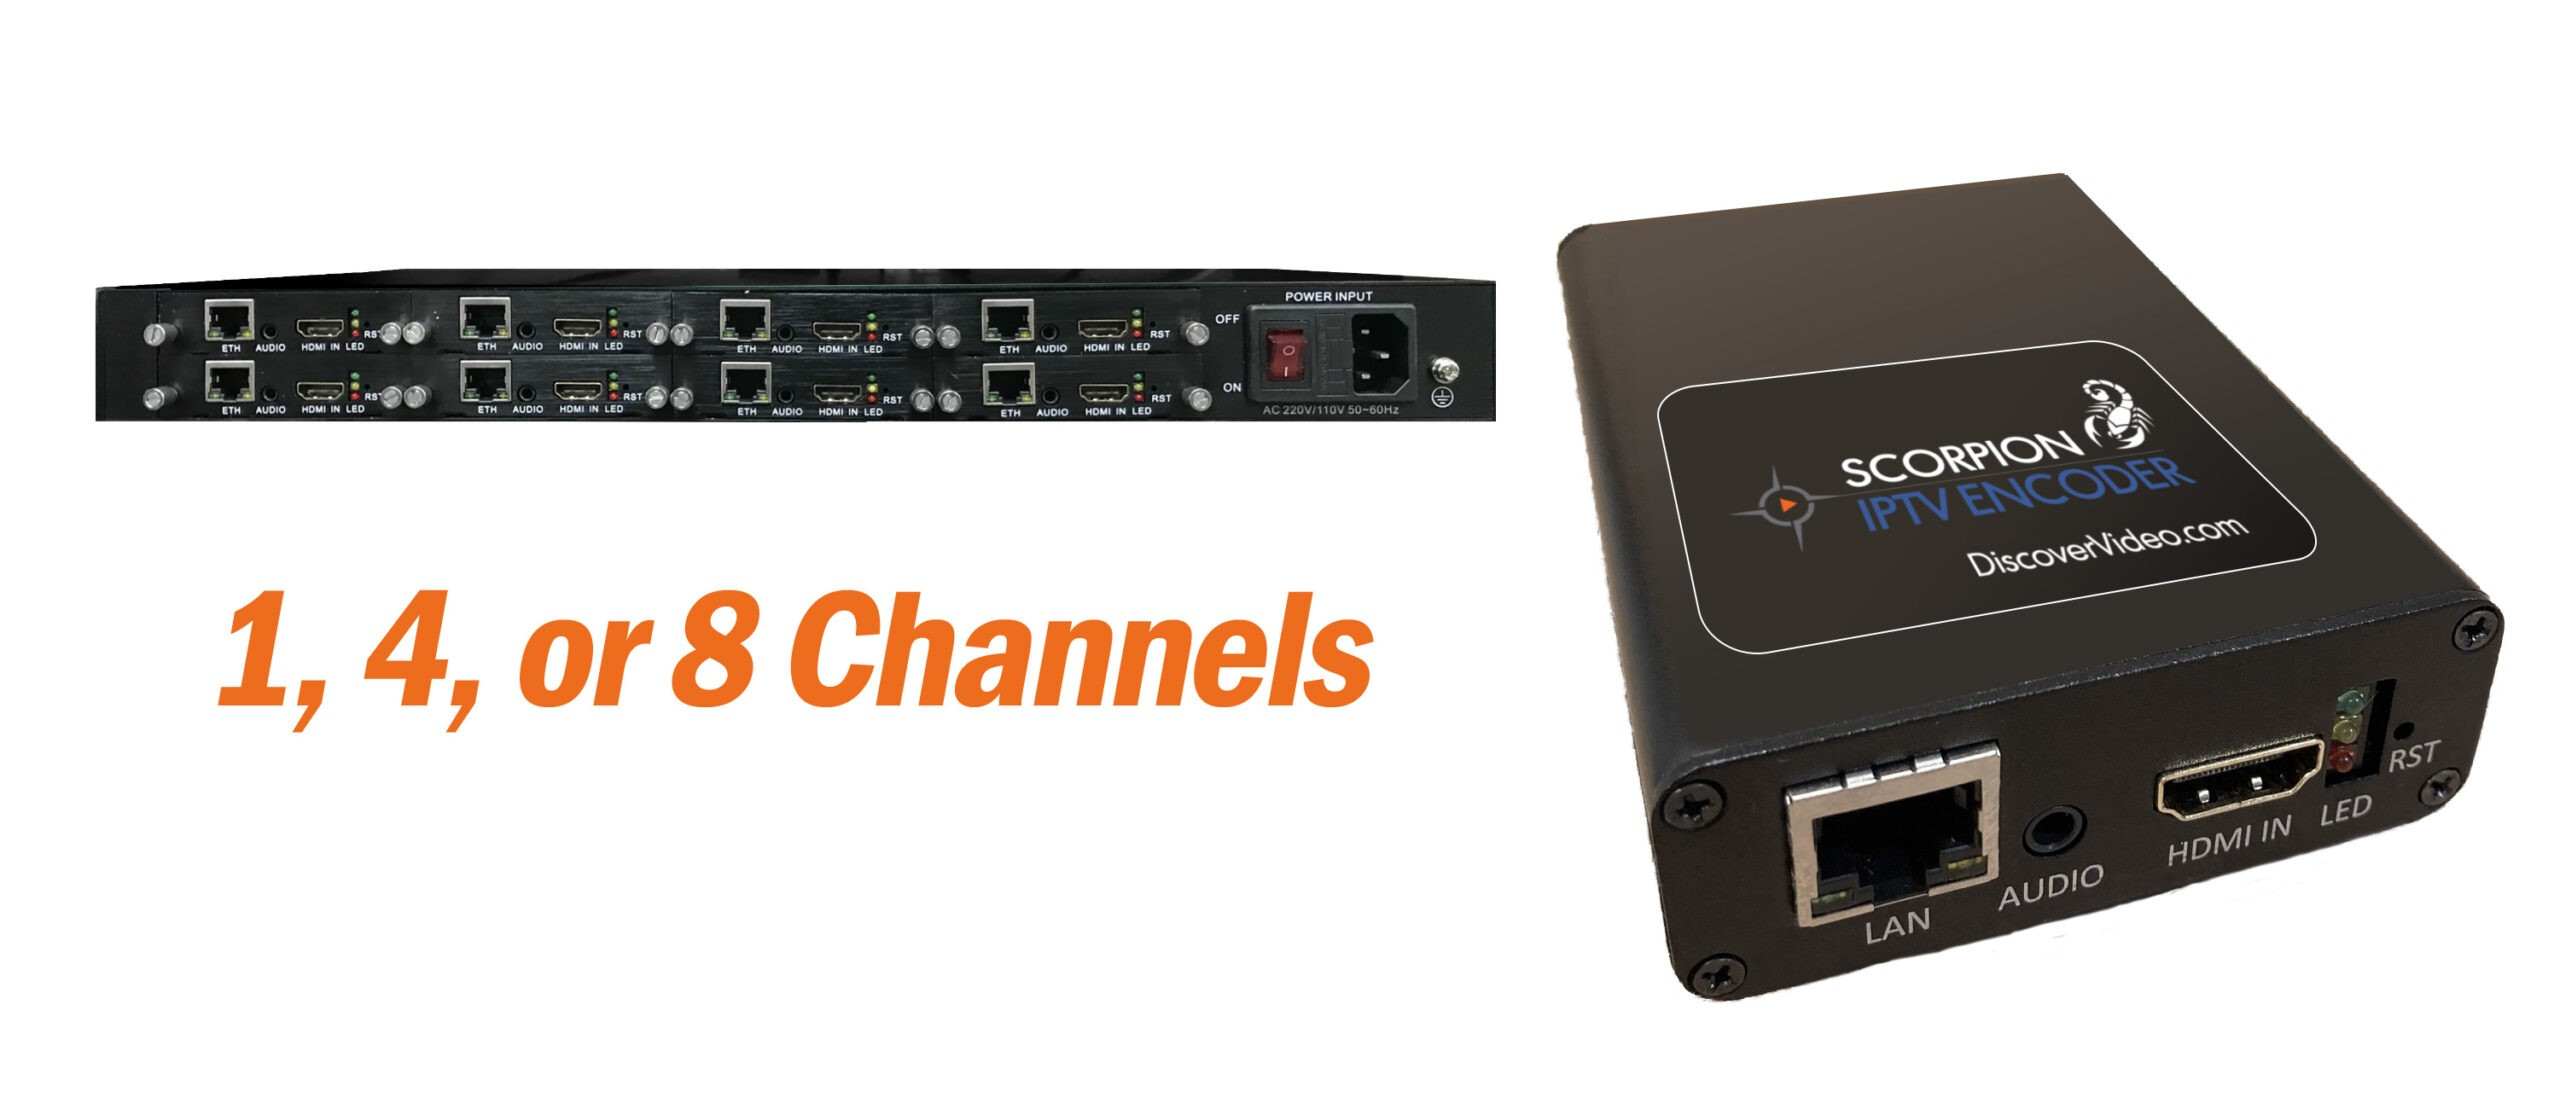 Scorpion Live IPTV HD Streaming Encoder Appliances from DiscoverVideo